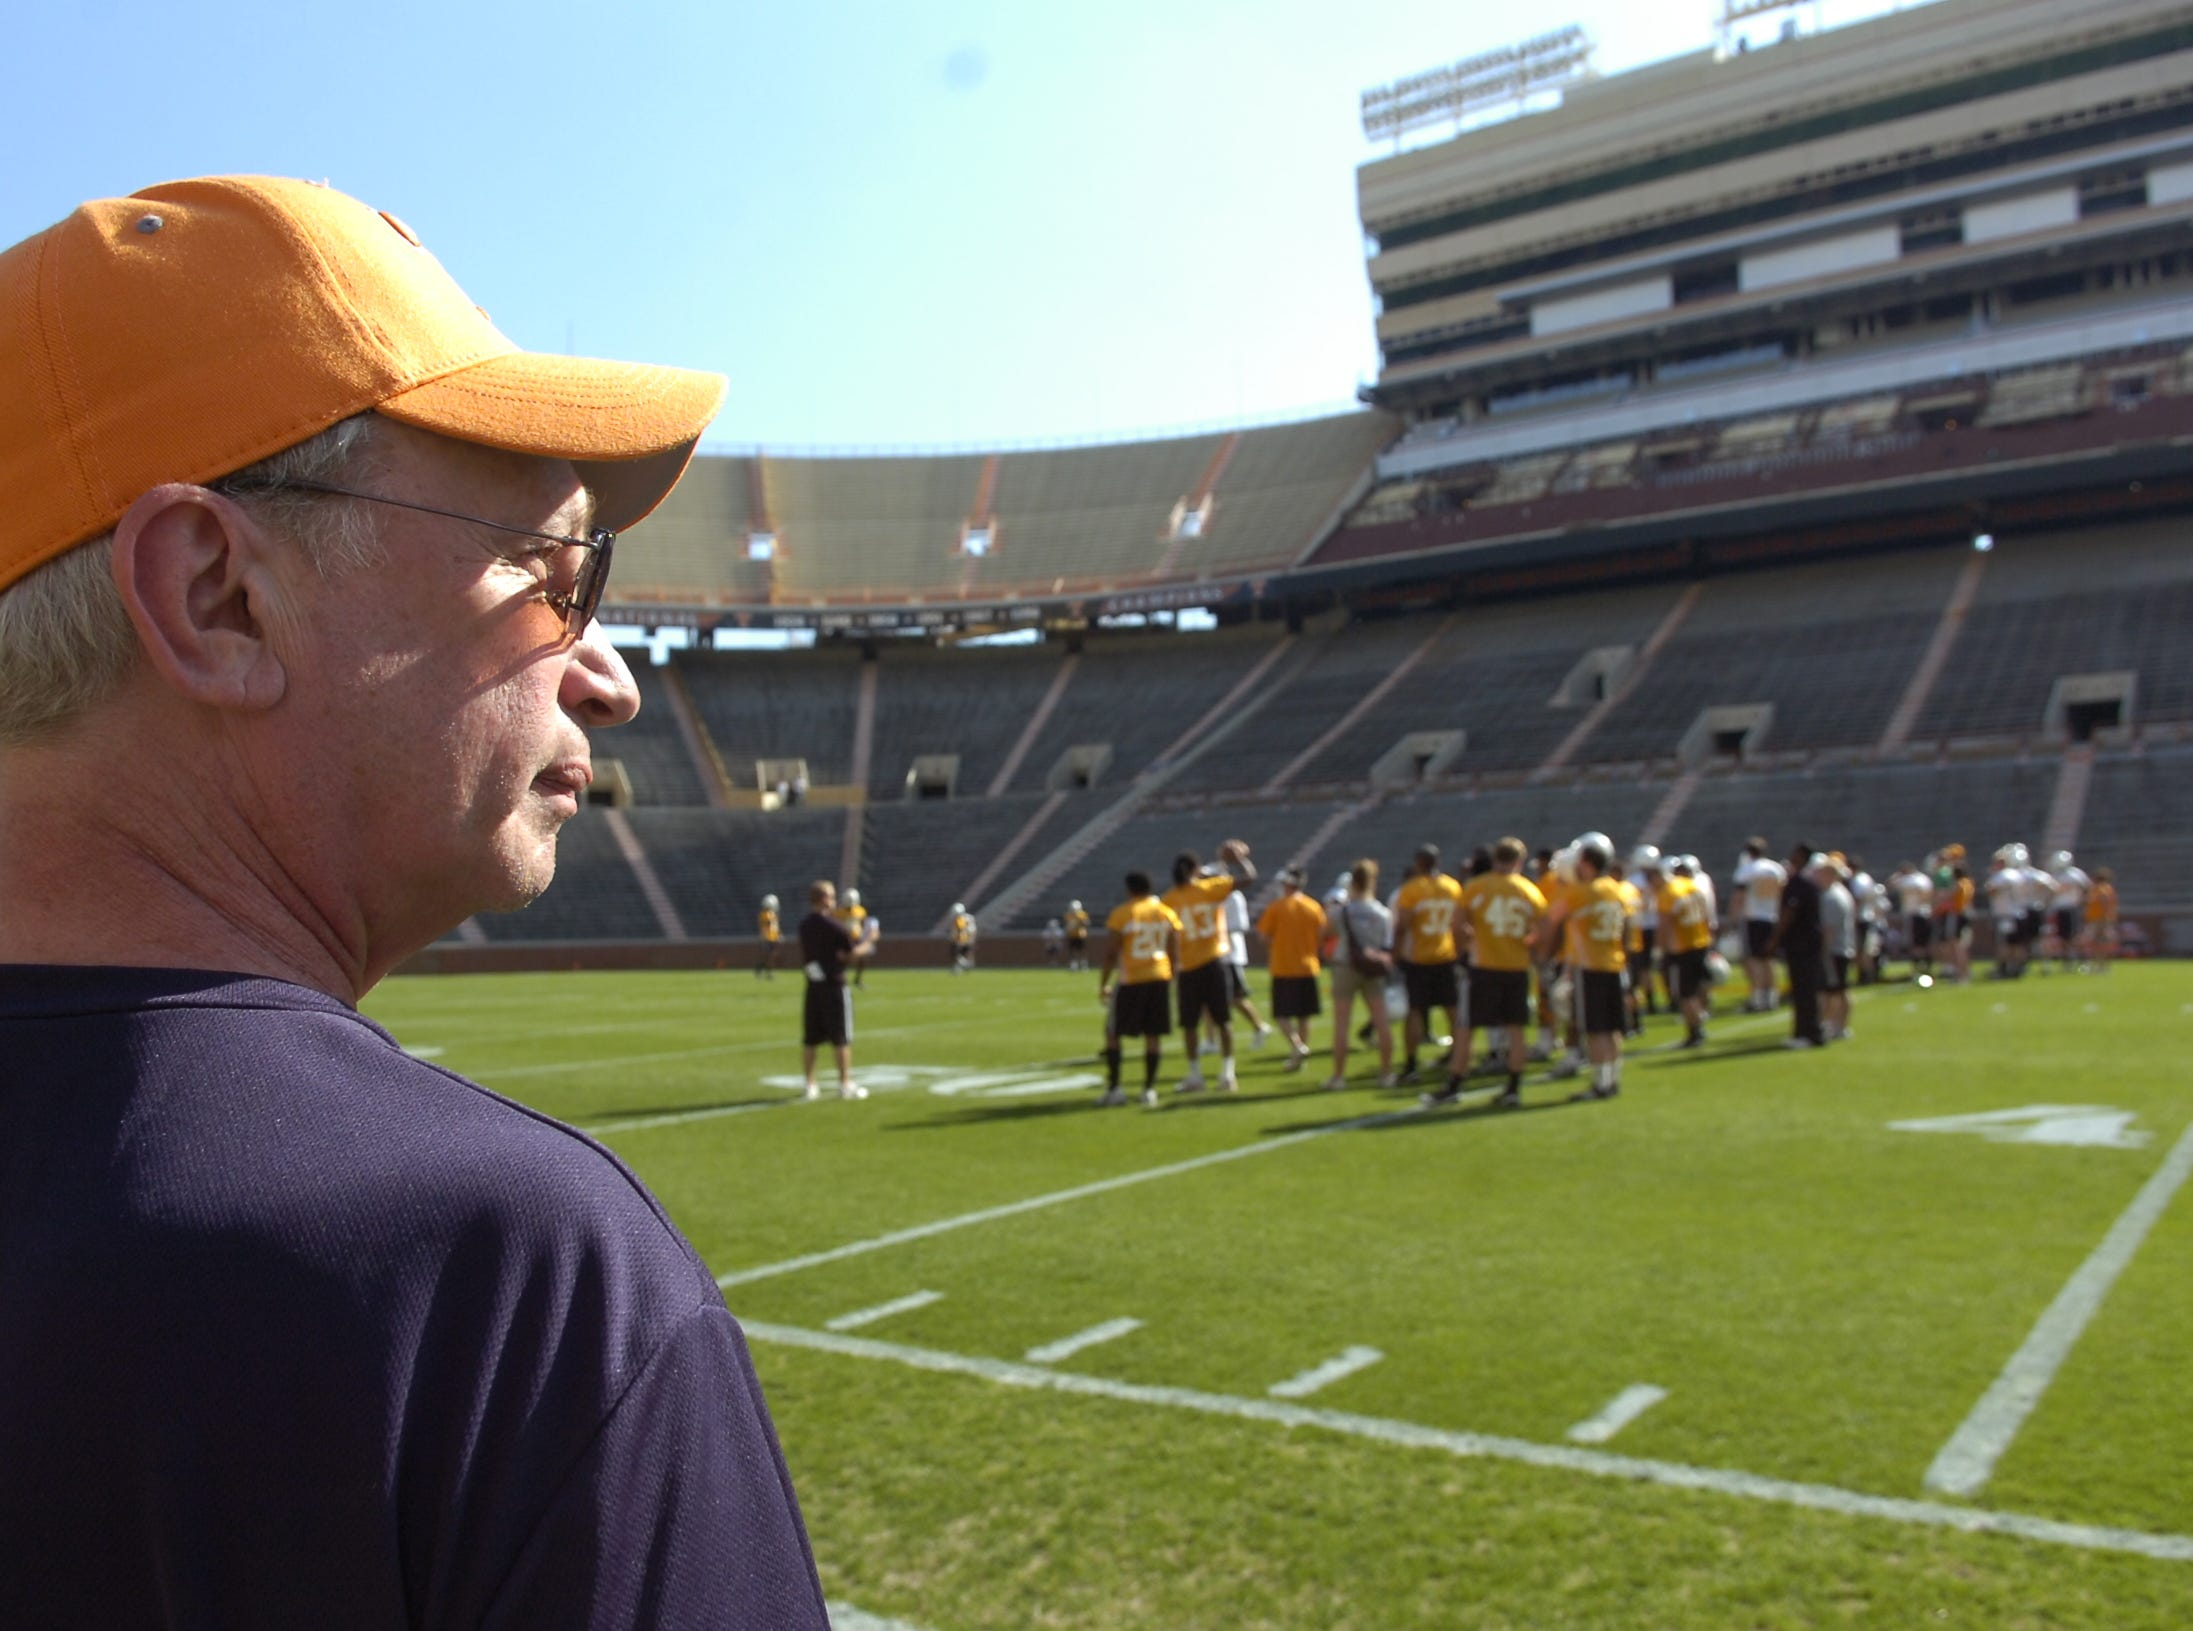 KNS sportswriter John Adams prepares for his celebrity coaching responsibilities during practice at Neyland Stadium on April 15, 2010.